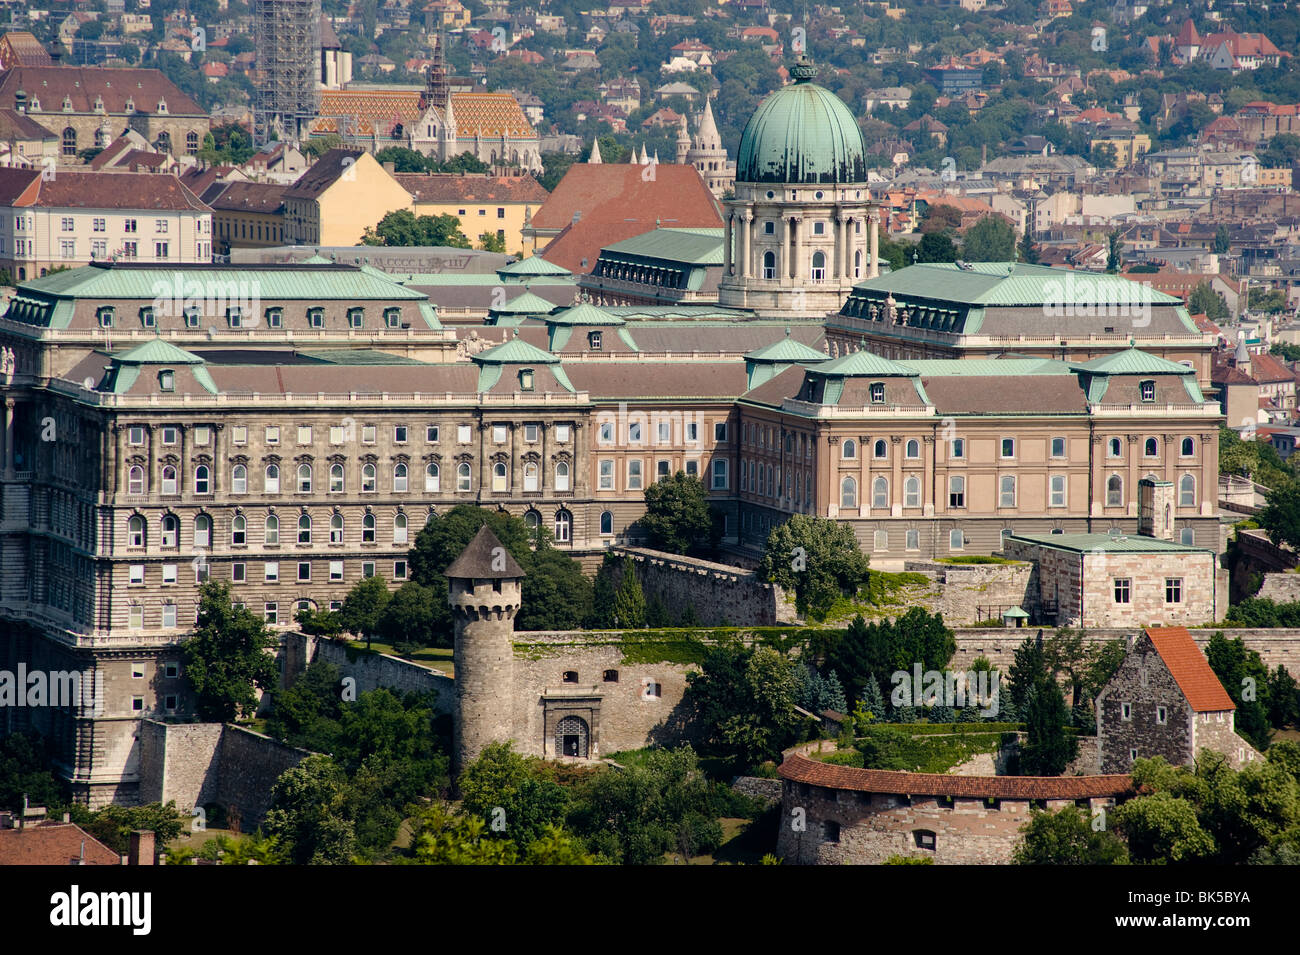 An aerial view of the Royal Palace on Castle Hill from Gellert Hill, Budapest, Hungary, Europe - Stock Image